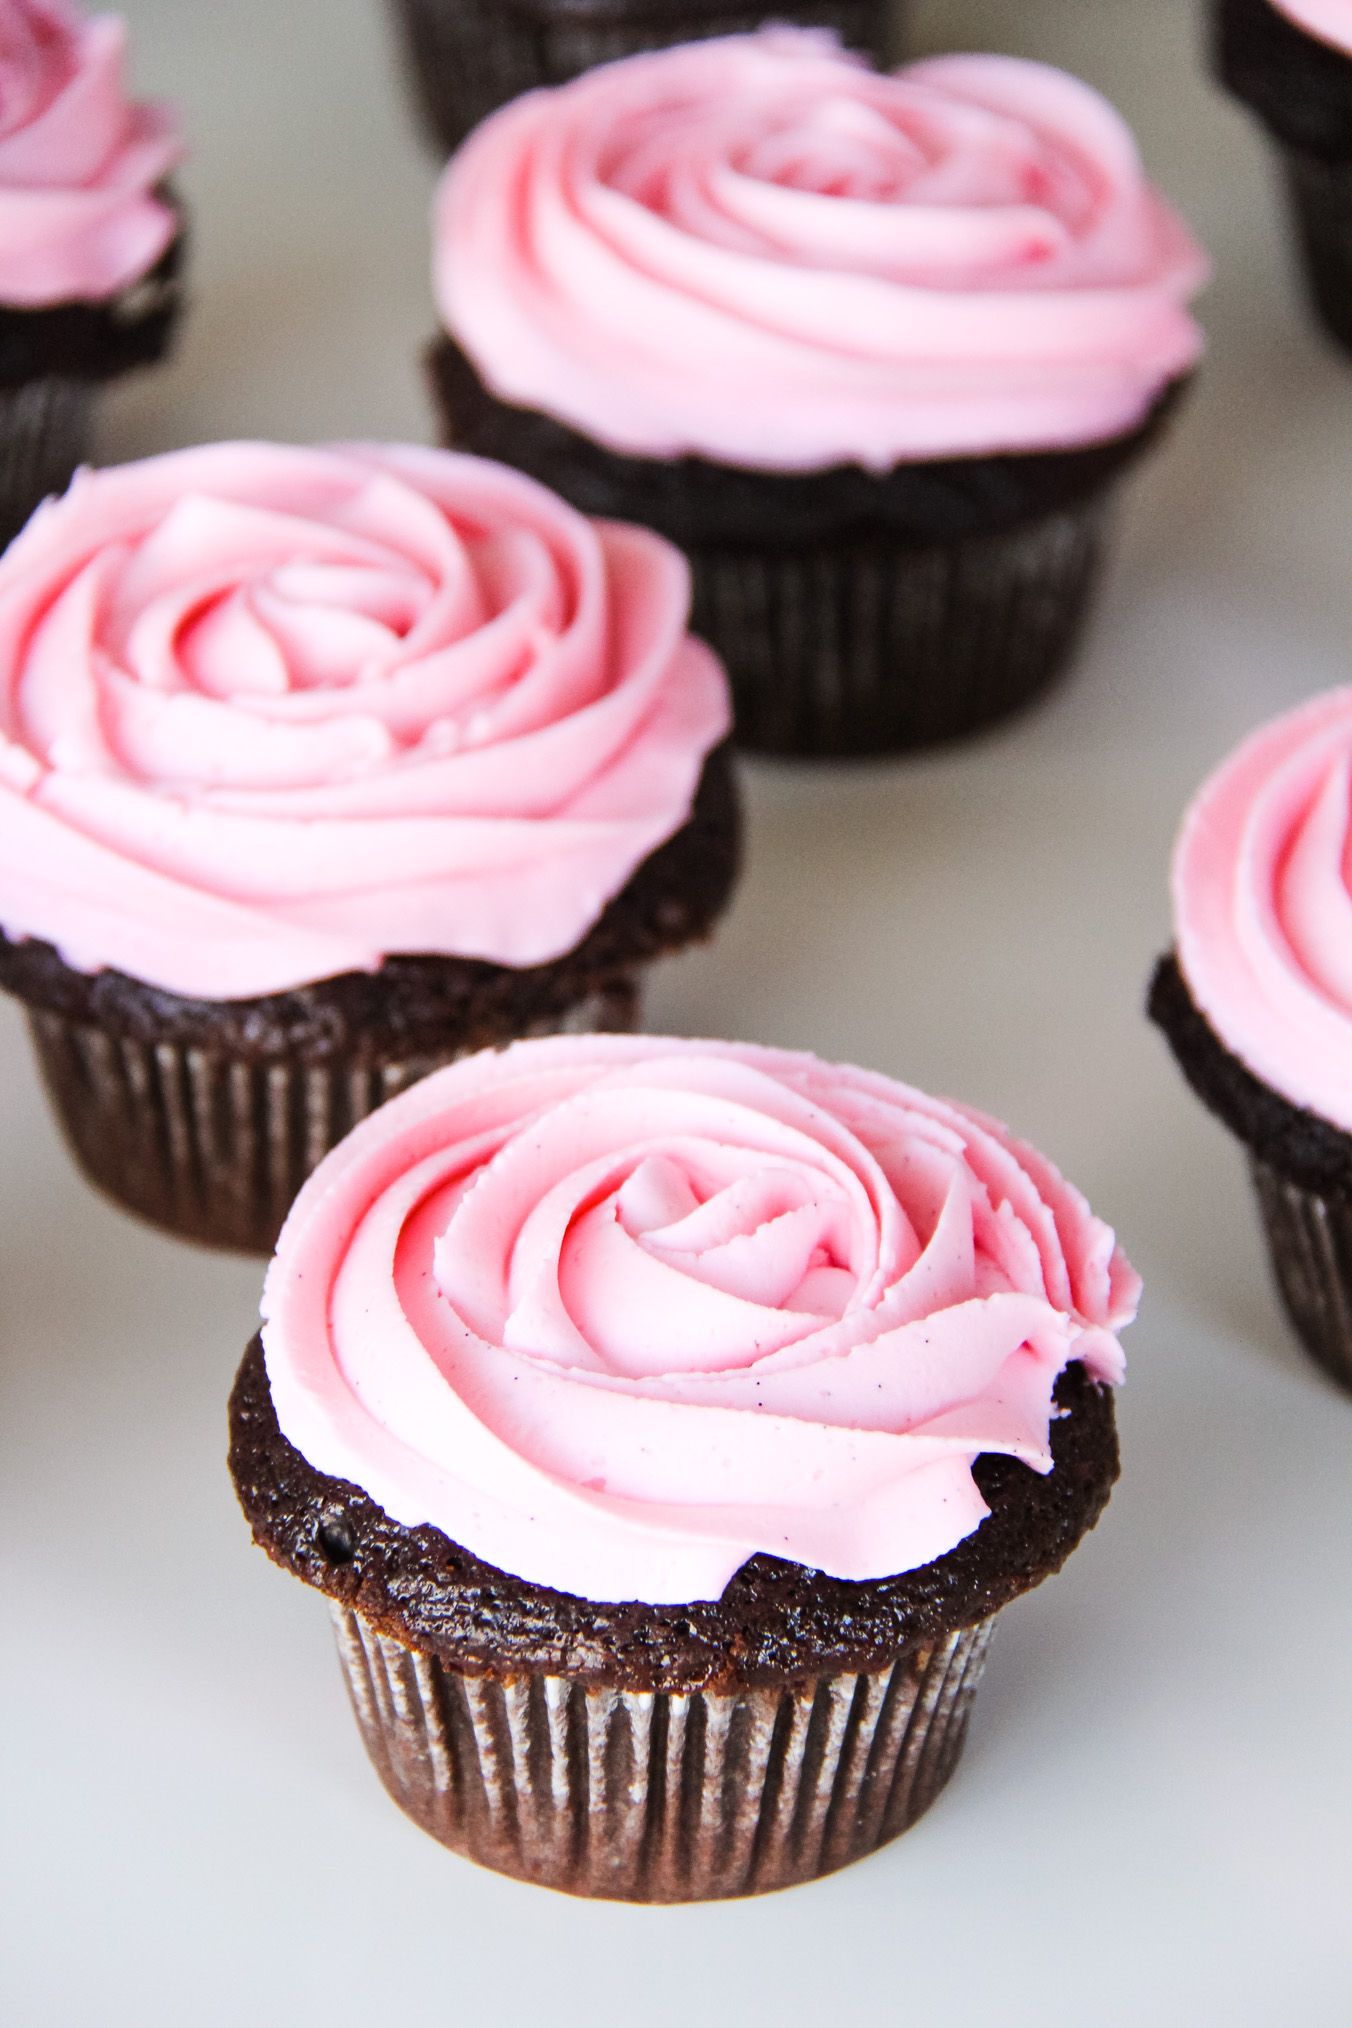 Chocolate Cupcakes with Pink Marshmallow Buttercream